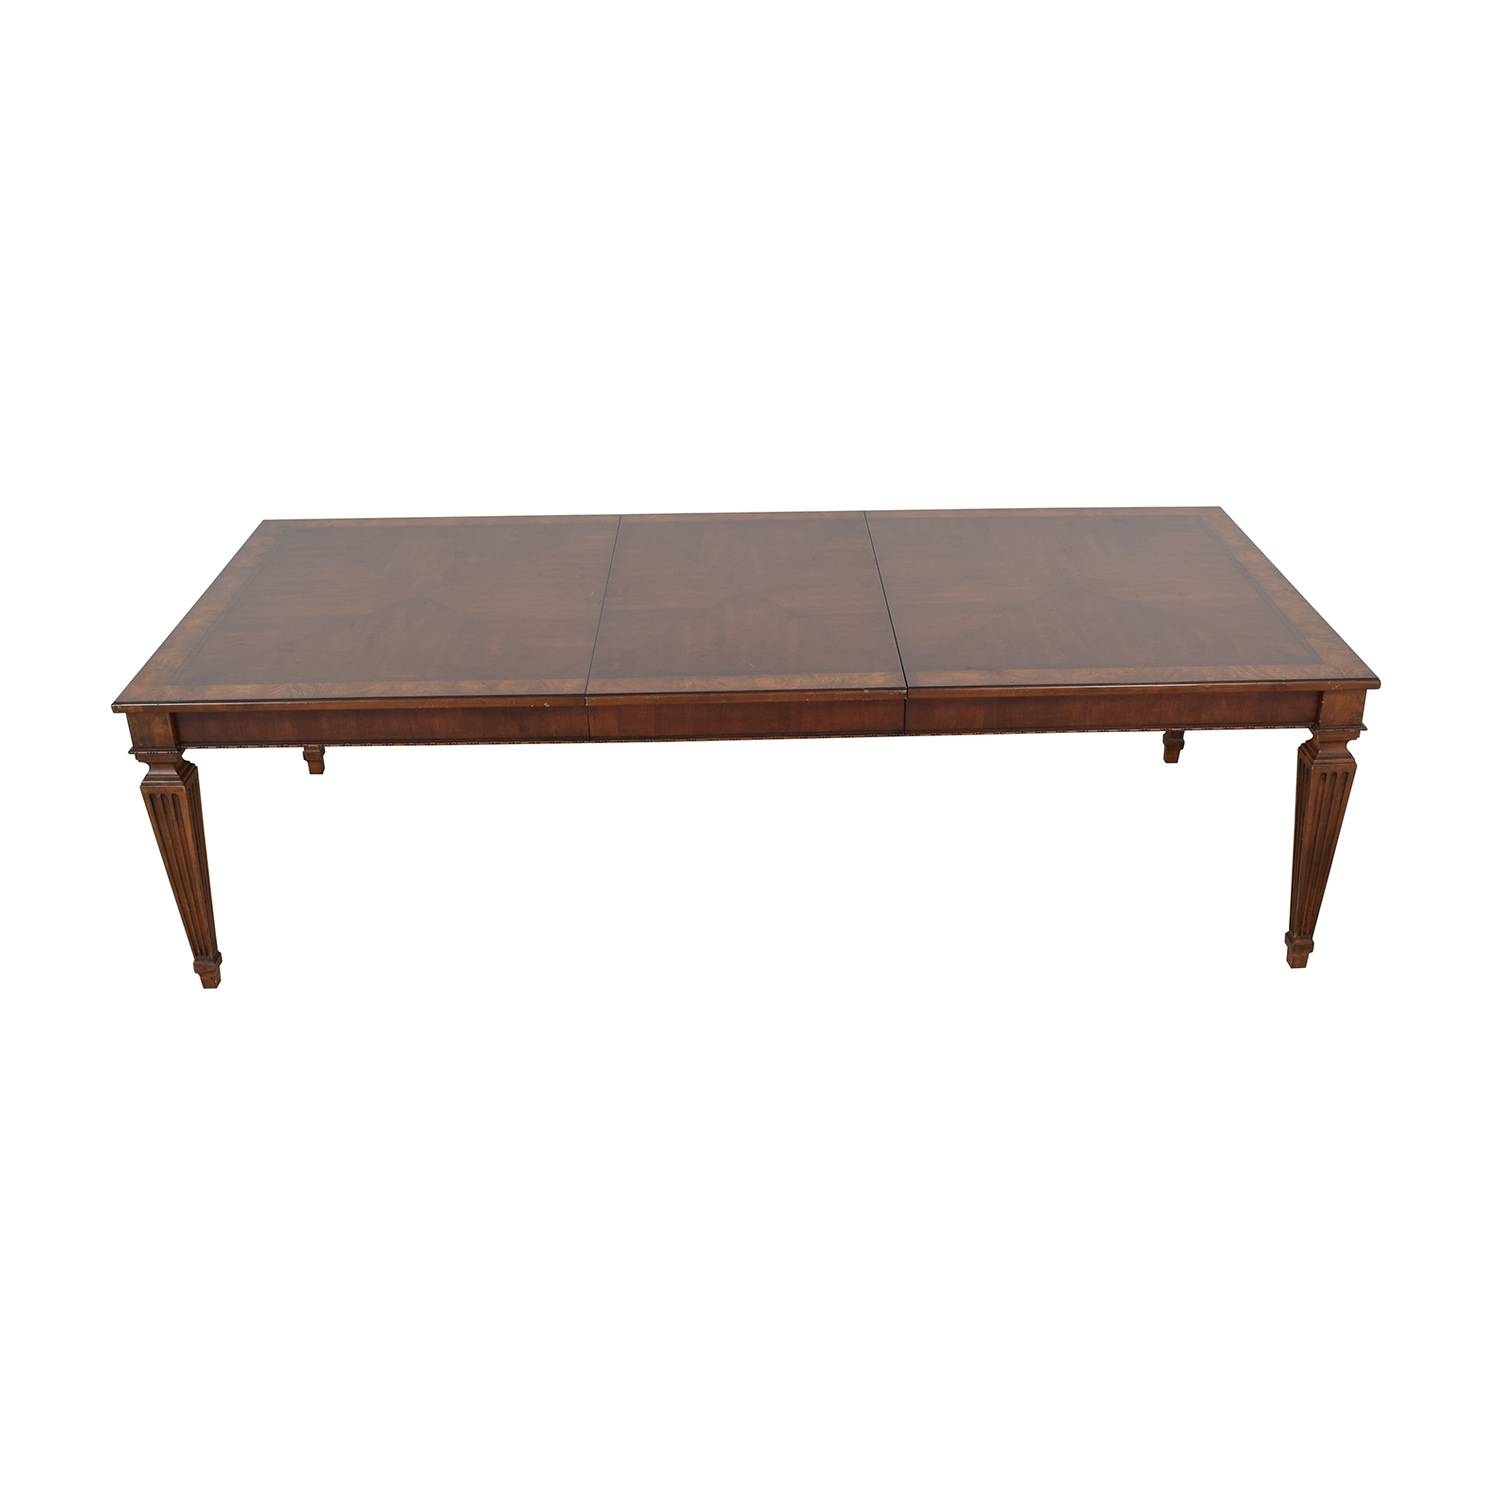 Ethan Allen Ethan Allen Goodwin Dining Table price